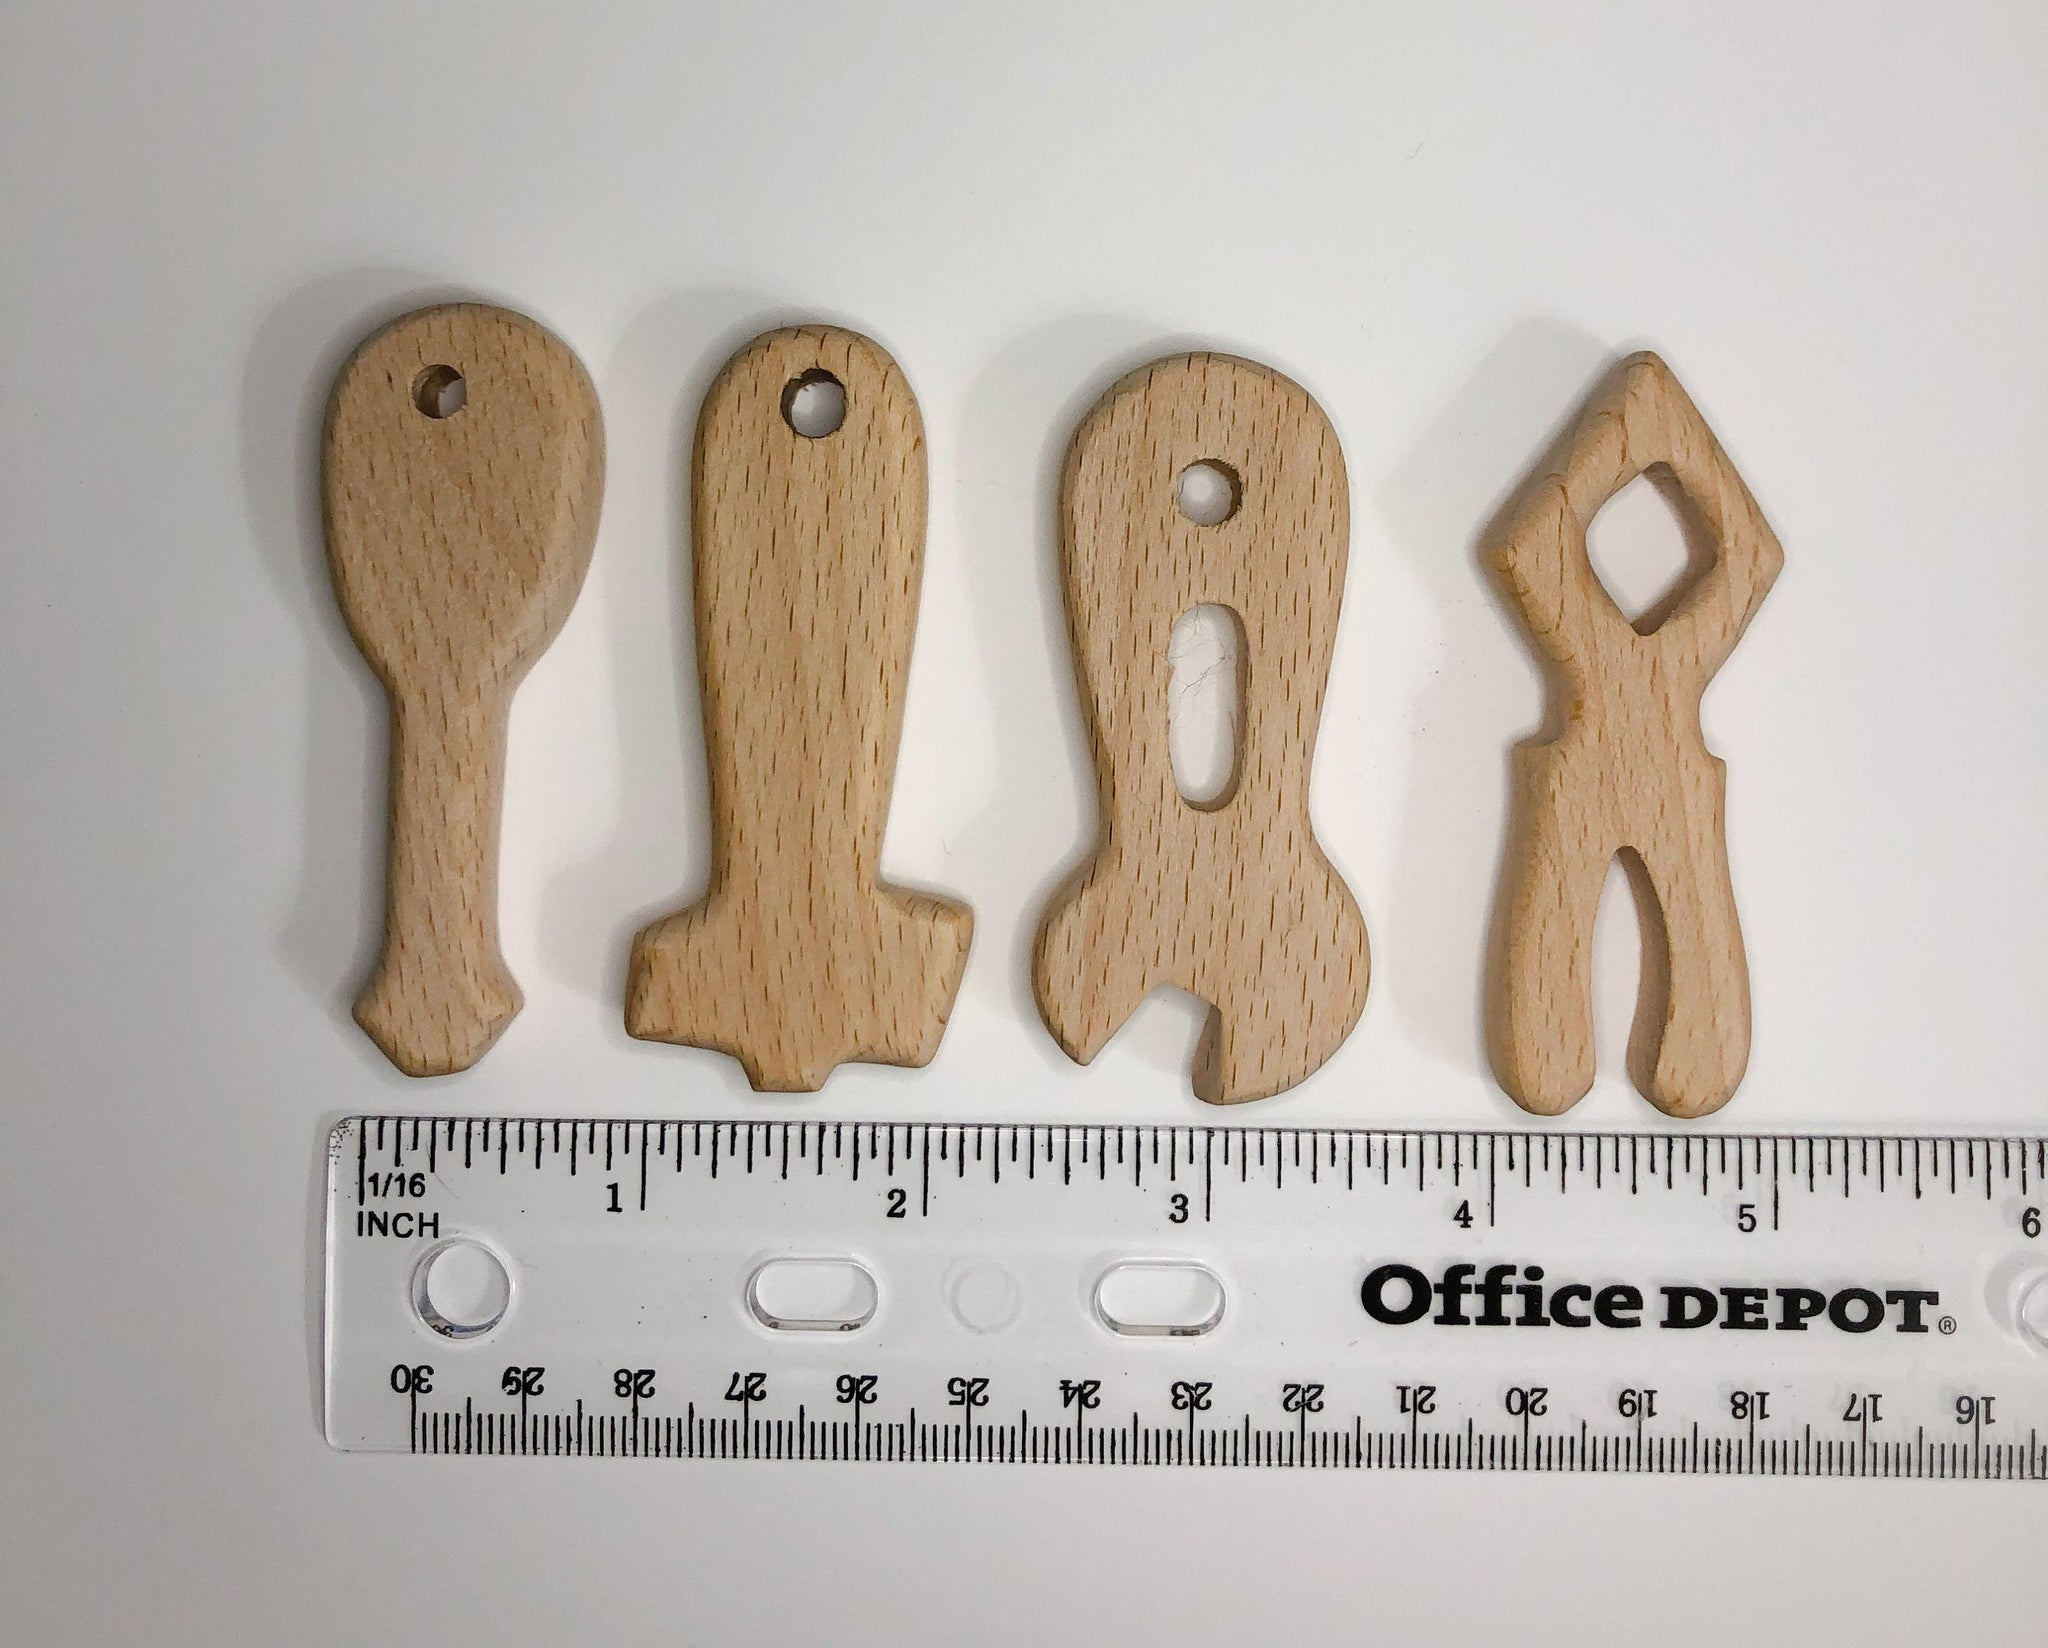 Wood Tools Hammer ONLY (1) - DIY Teething Wood Bead - Birch Tool Bead - Wood Teething Bead - Engravable - Personalized